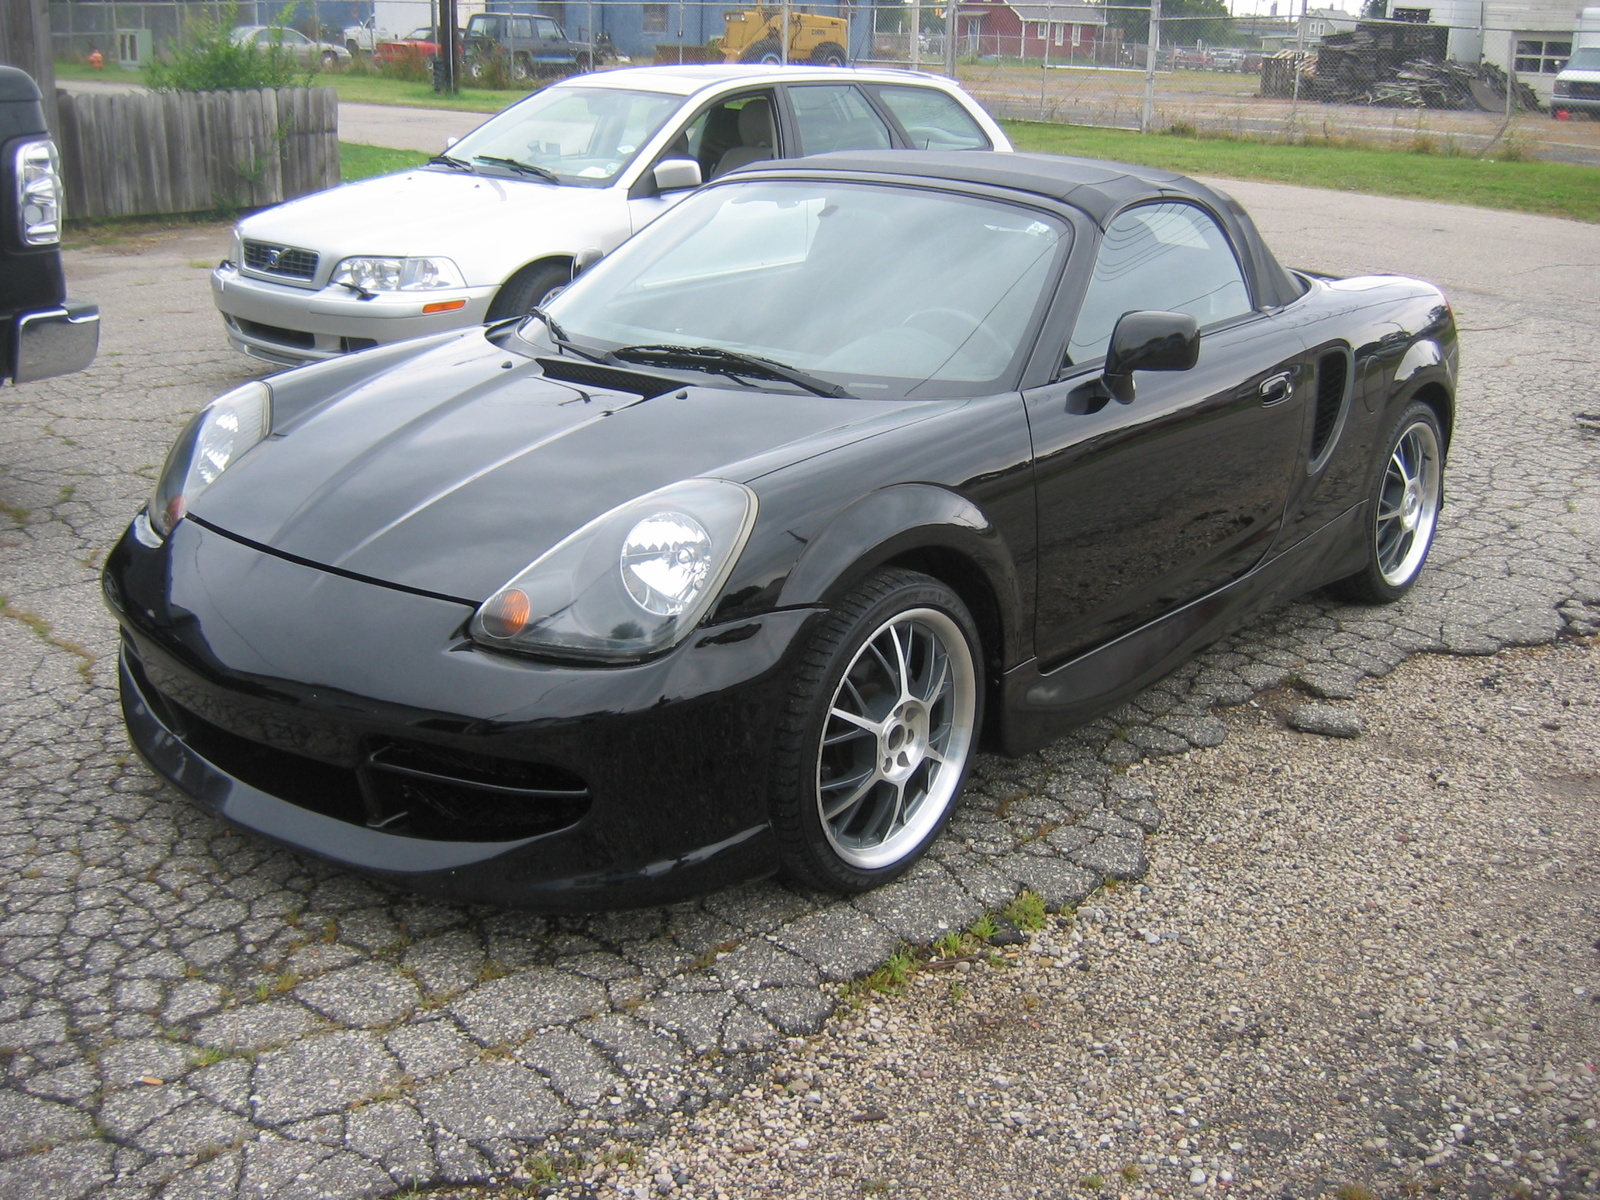 2001 toyota mr2 spyder bing images. Black Bedroom Furniture Sets. Home Design Ideas